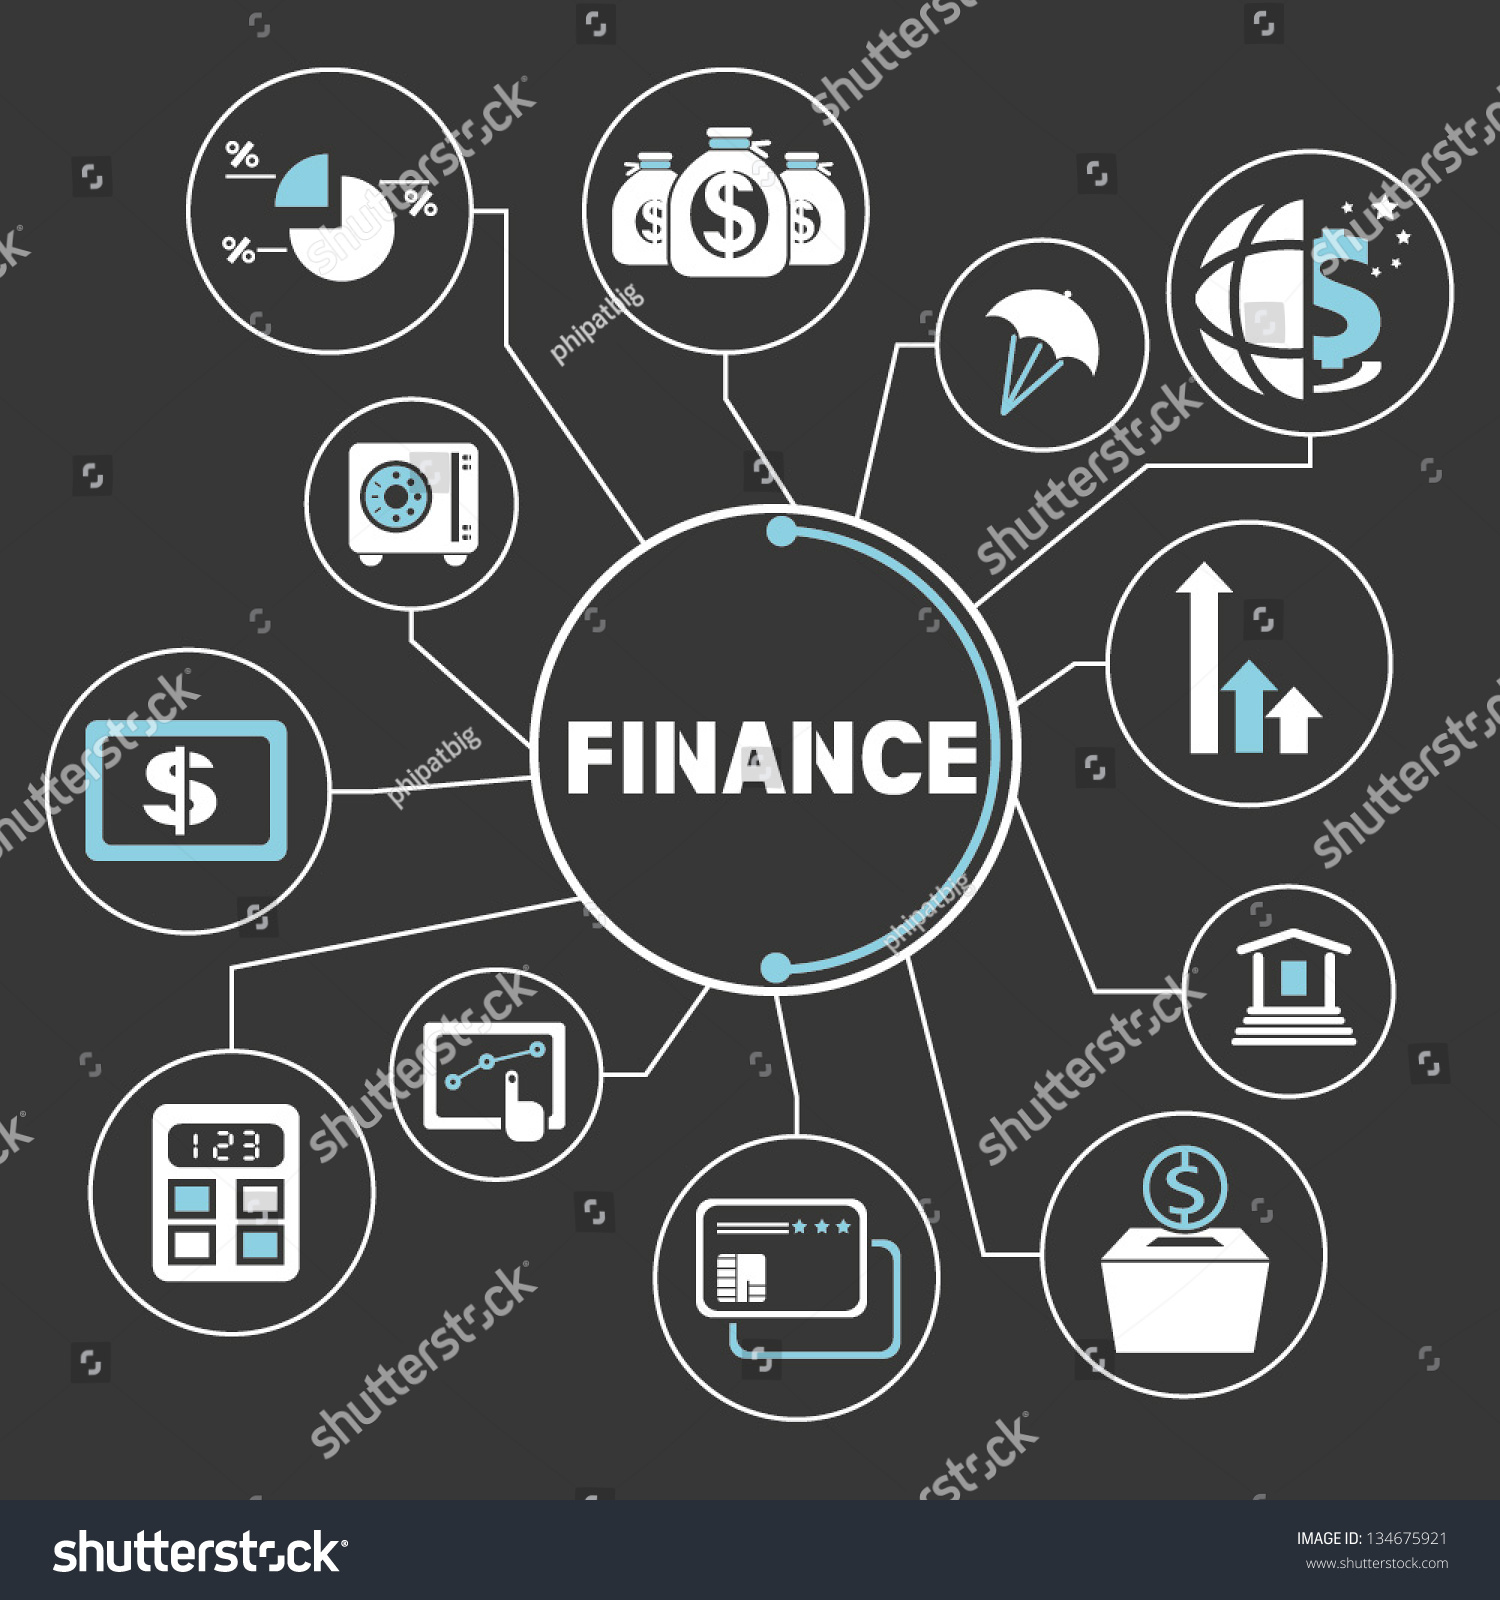 Financial mind map info graphics stock vector 134675921 shutterstock financial mind map info graphics biocorpaavc Images